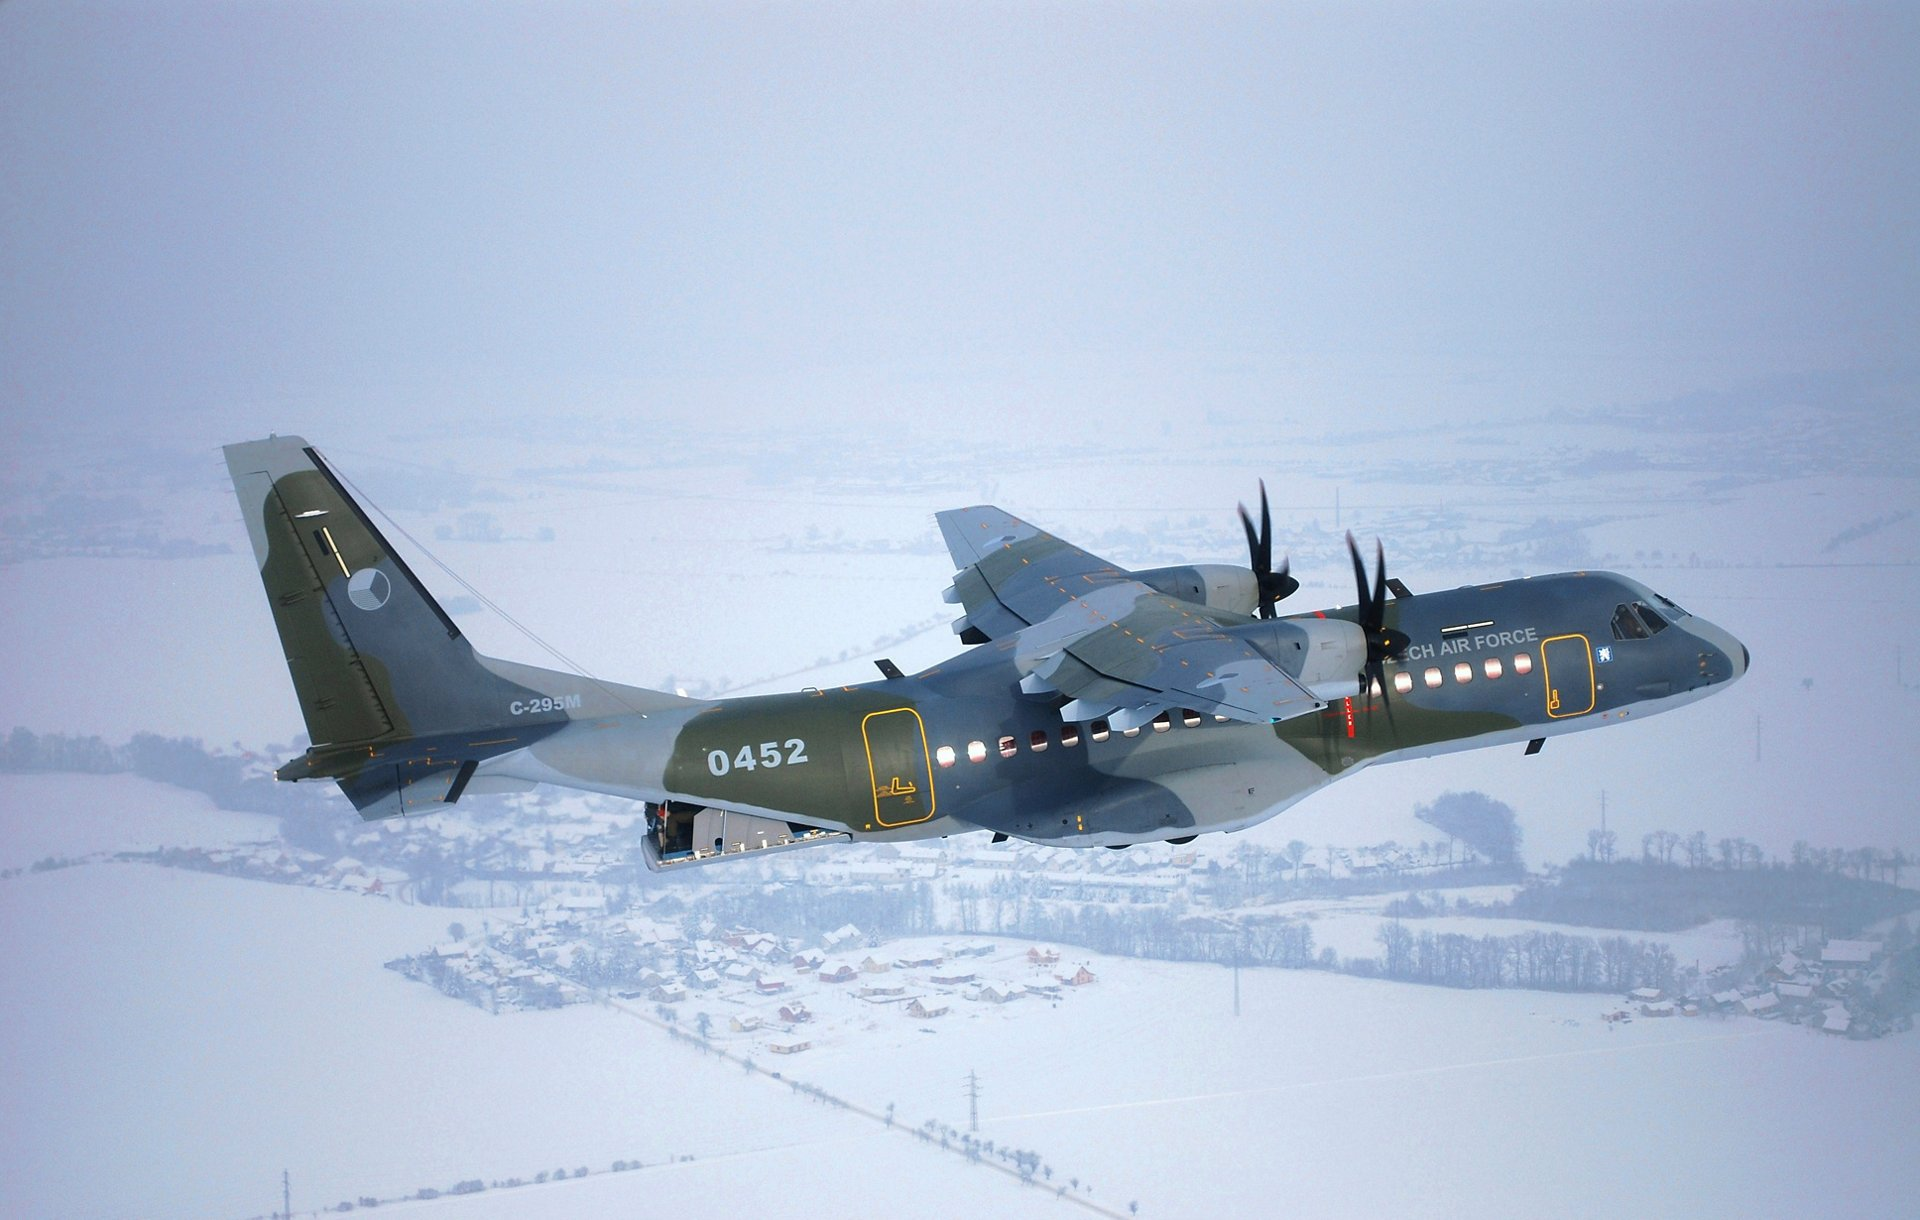 This order for two C295s by the Czech Republic brings Airbus Defence's total bag to five C295 orders over the past week, with two maritime patrol variants for the Irish Air Corps and one transport version for Burkina Faso, both announced Dec. 12. (Airbus photo)